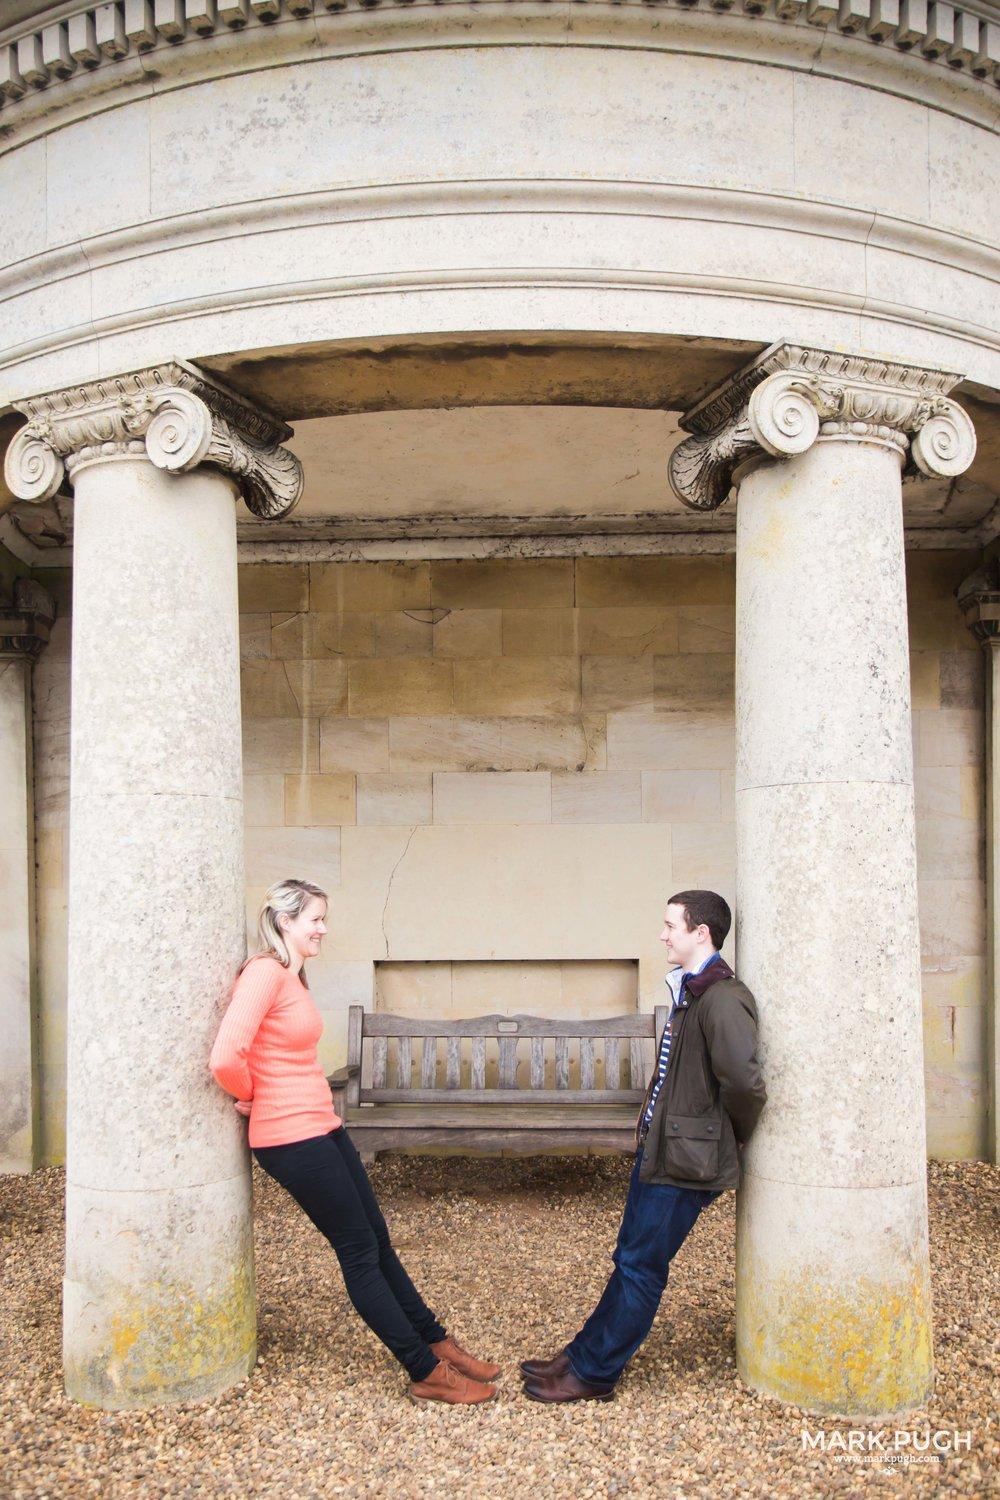 024 - Fliss and Jamie - fineART preWED photography by www.markpugh.com Mark Pugh of www.mpmedia.co.uk_.JPG